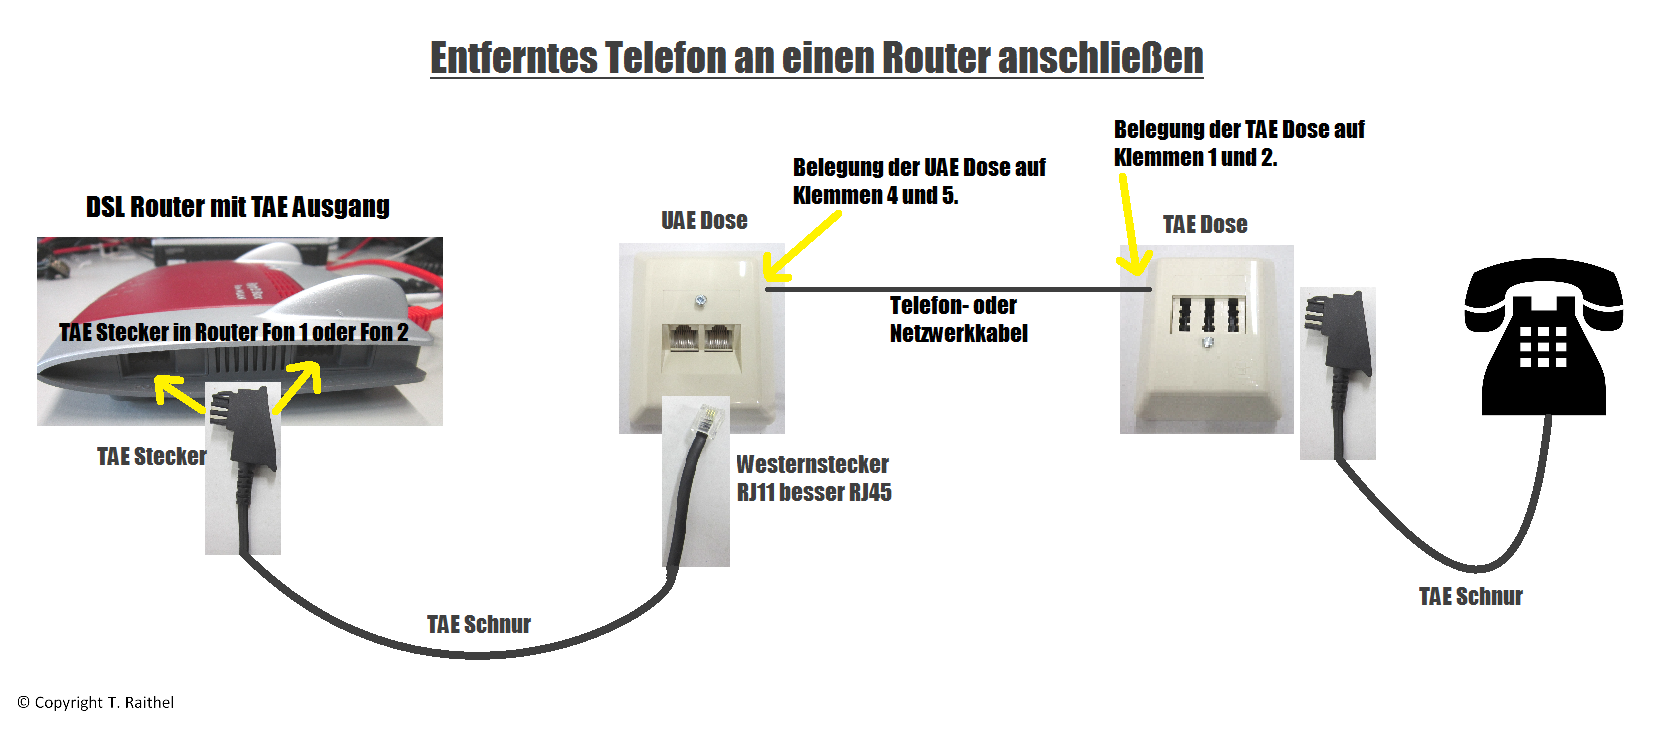 dsl router anschlie en isdn anlage an router anschlie en. Black Bedroom Furniture Sets. Home Design Ideas